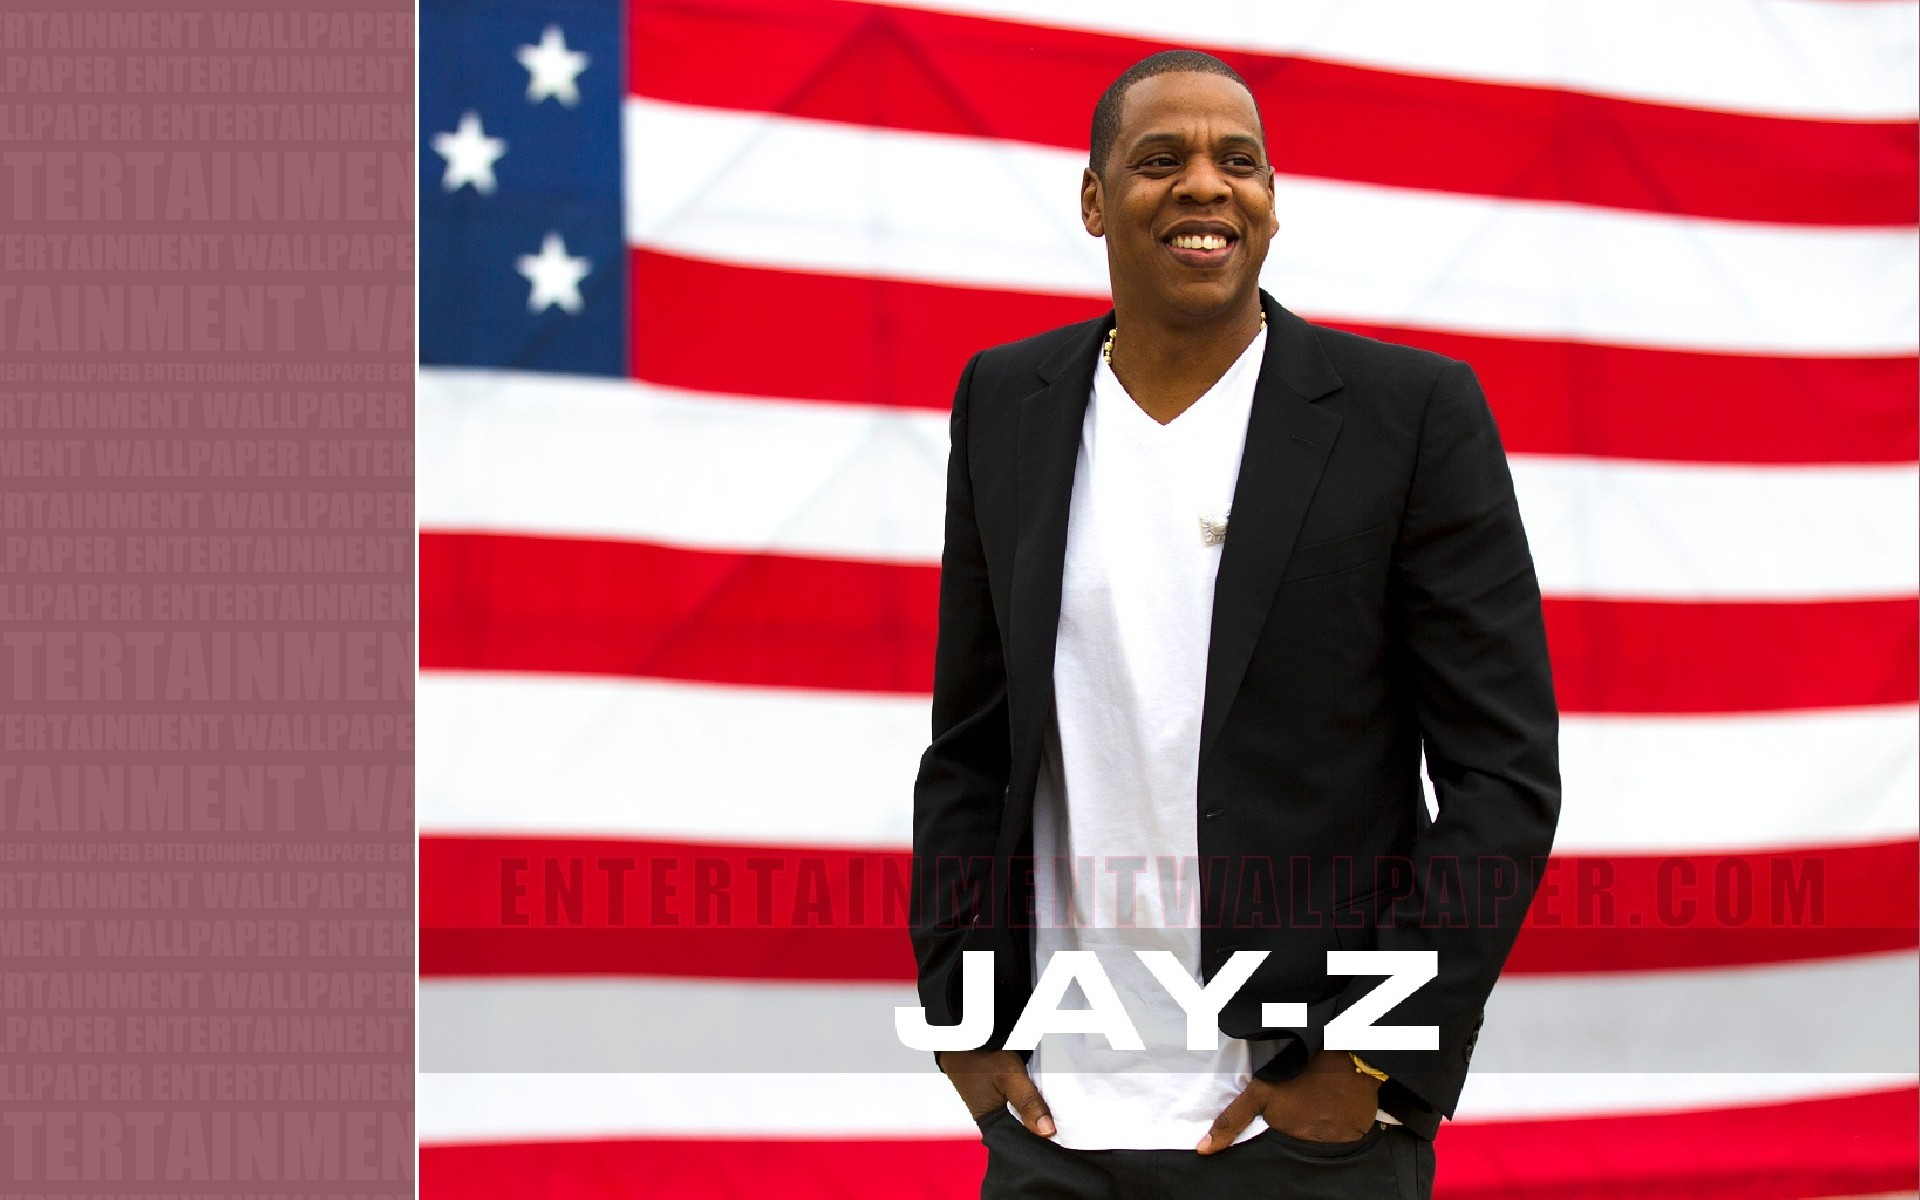 … jay z wallpaper 40040083 desktop download page …